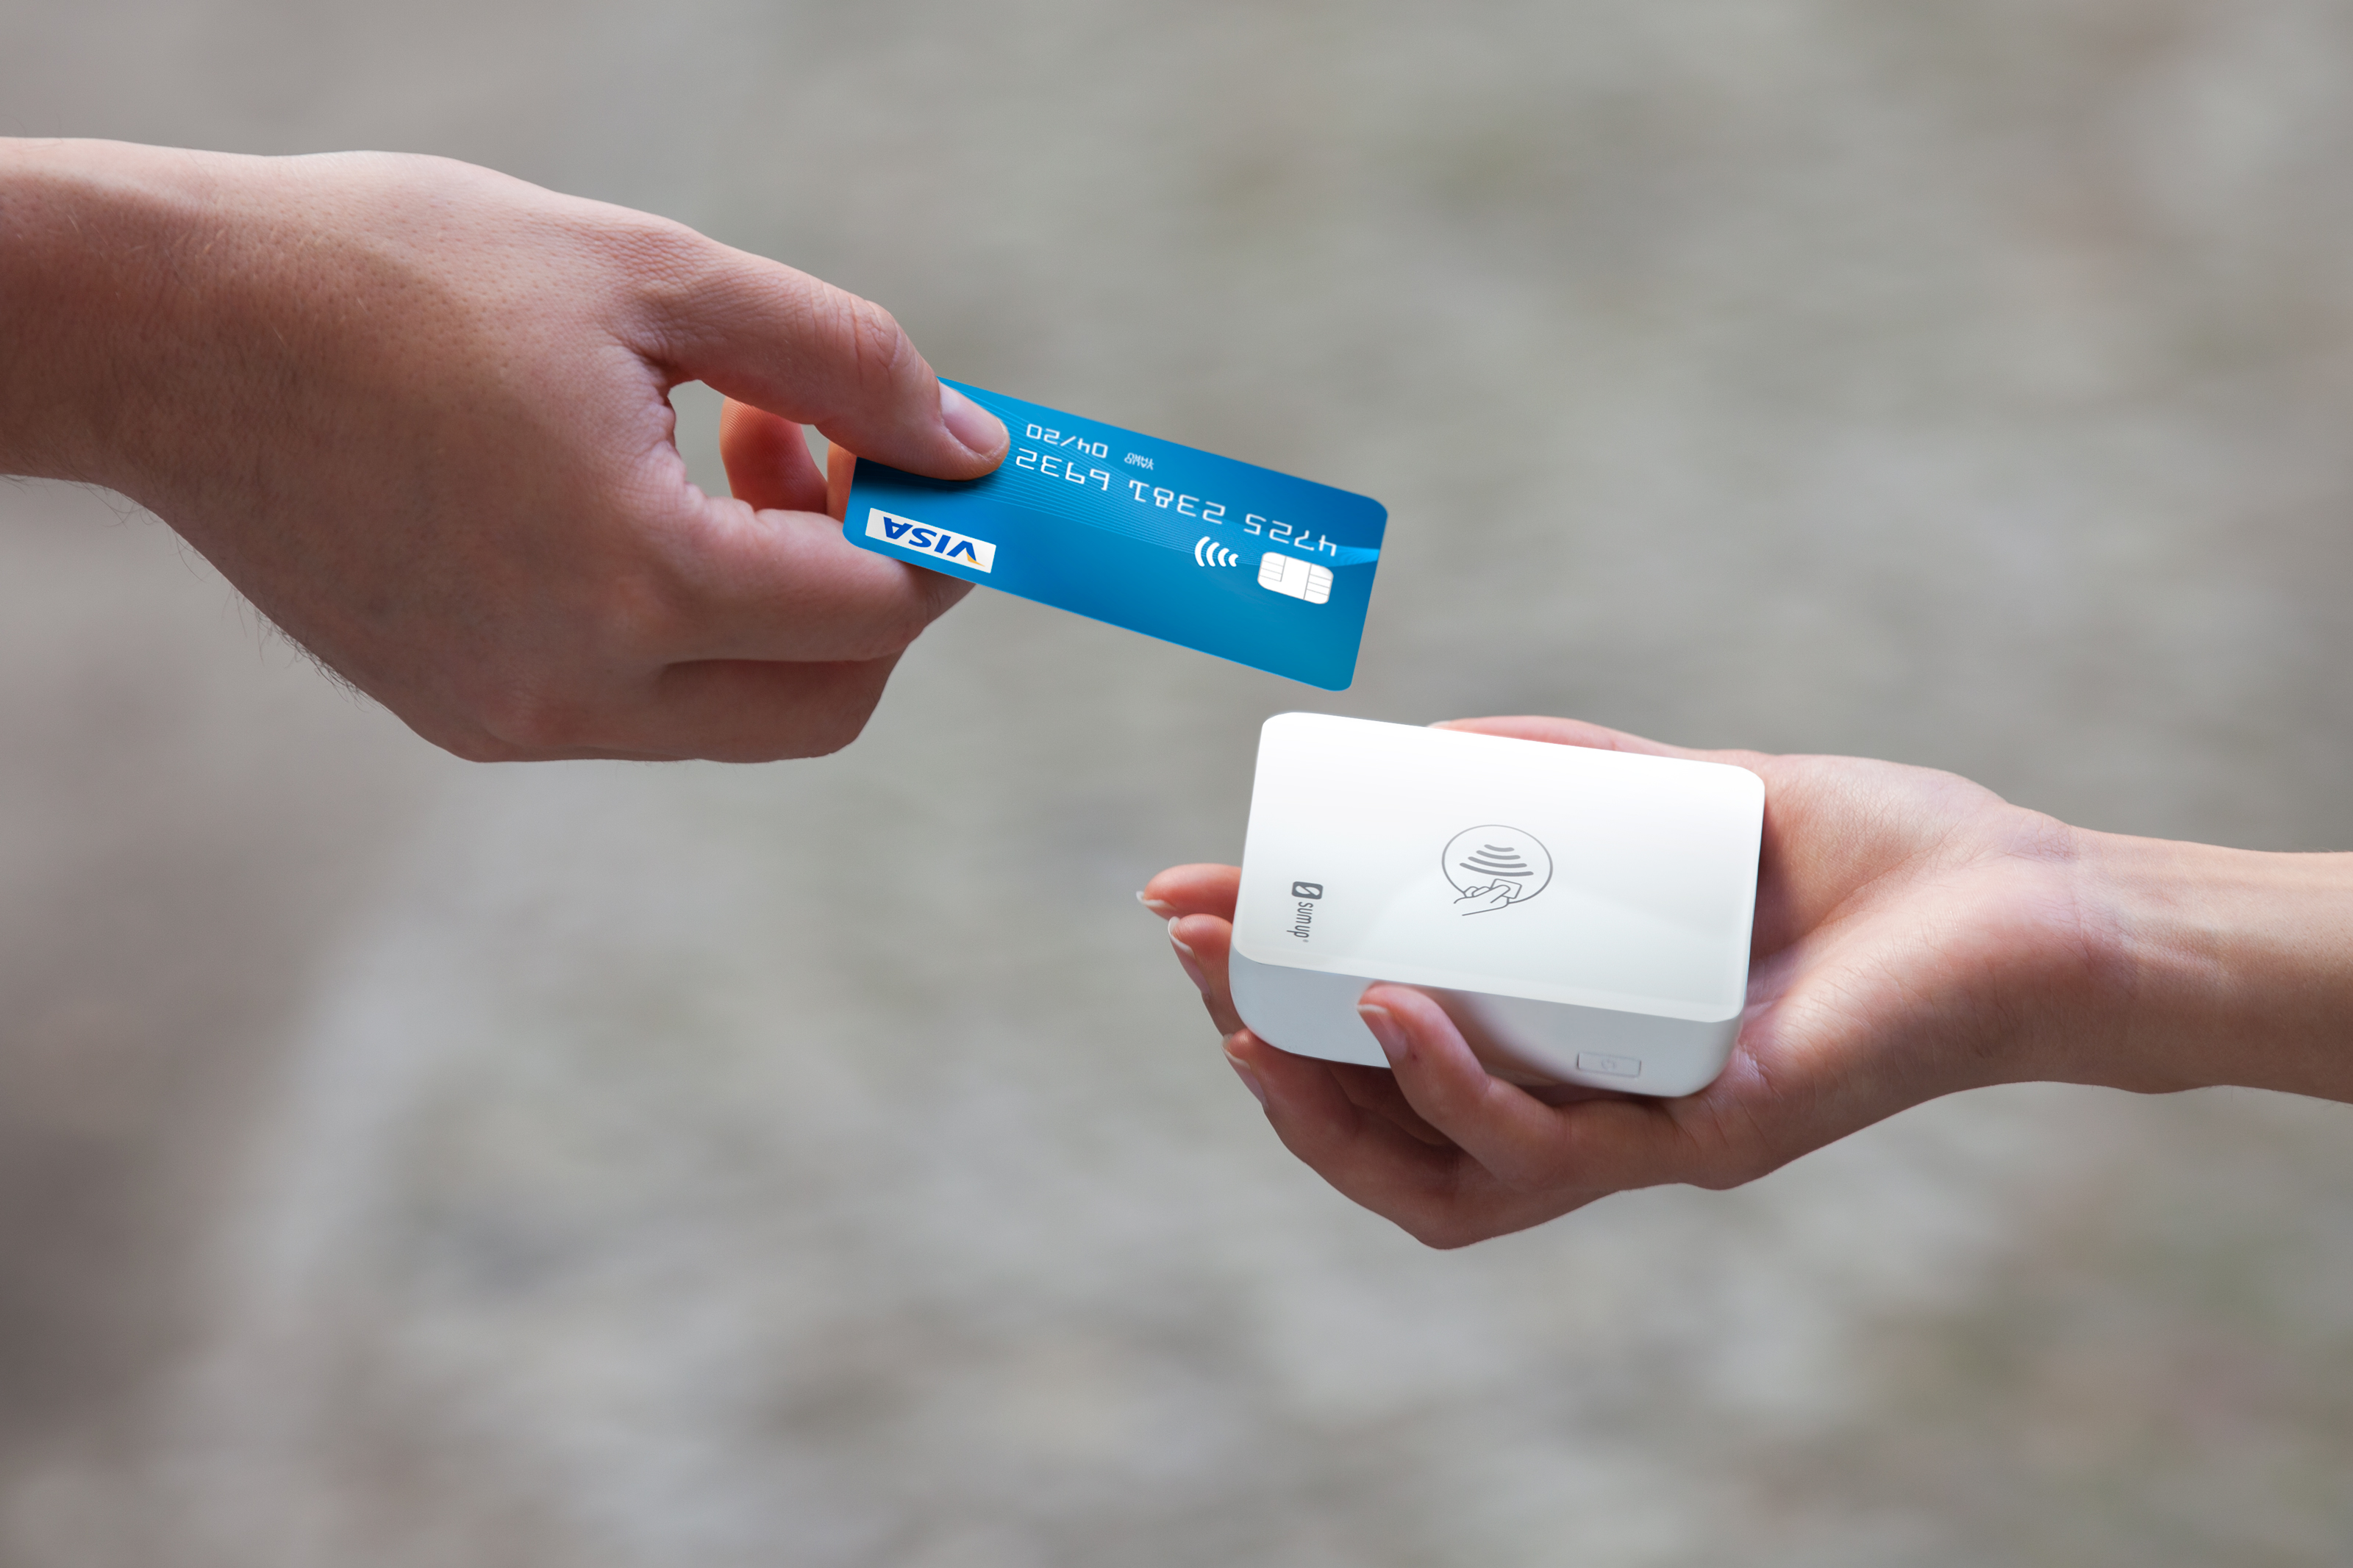 Mobile Point Of Sale: What Are They and Why Should You Care?